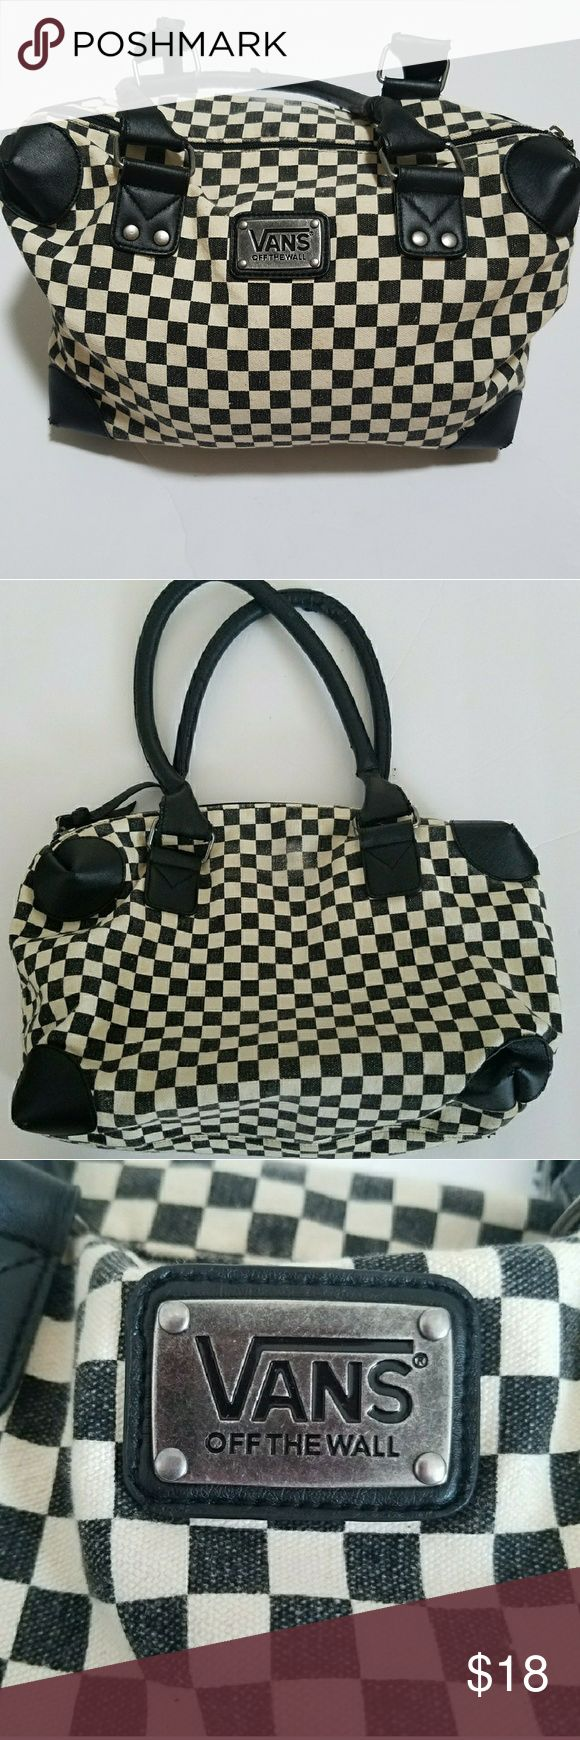 """Vans Classic Black/White Checkerboard Bag Vans Classic Black/White Checkerboard Purse.  Approx. measurements 15""""width, 9"""" length. Slight fading, cracking on handle and bottom. Clean inside with interior zip pocket. Bags Shoulder Bags"""